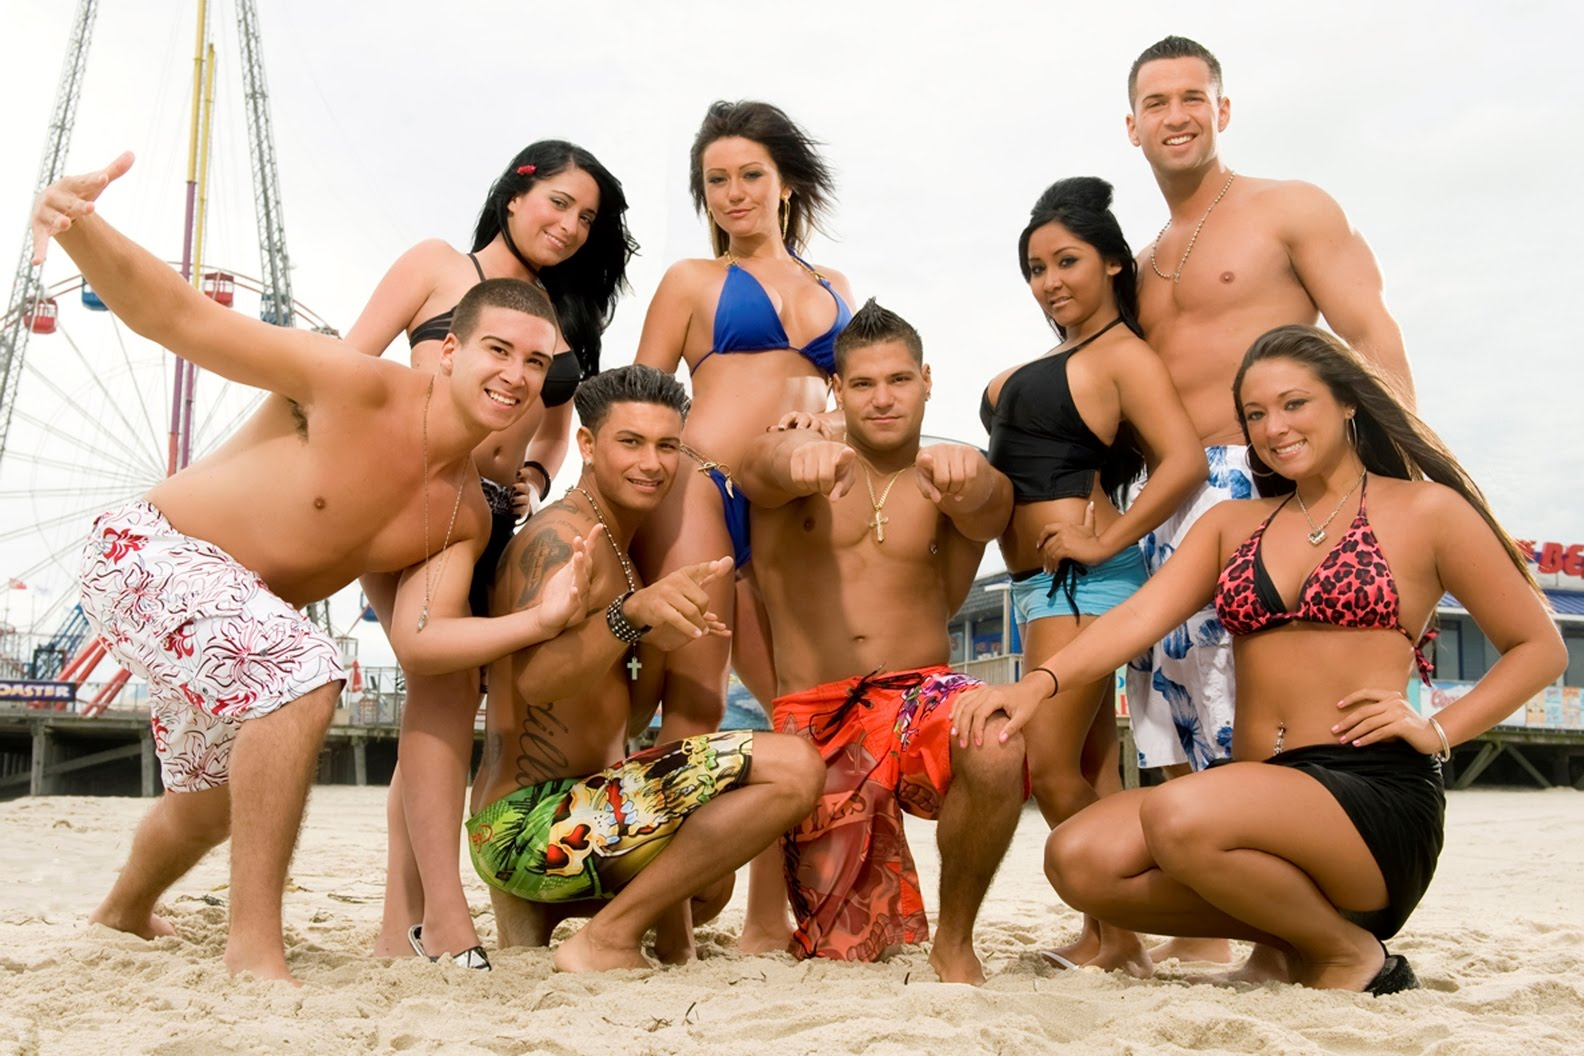 List of Jersey Shore episodes - Wikipedia